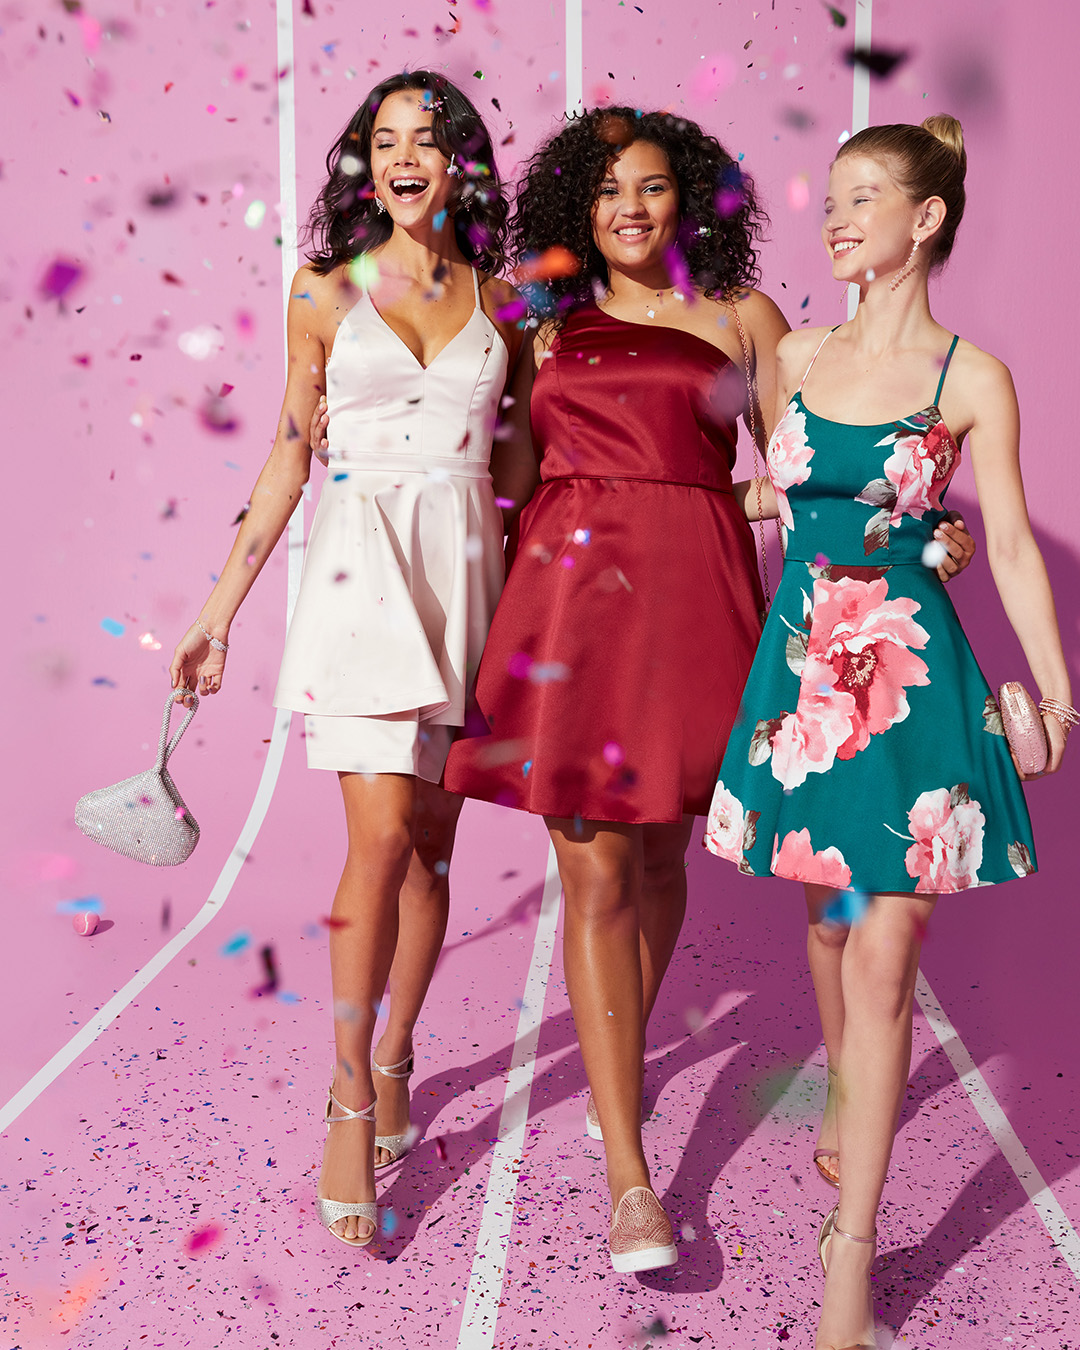 Girls arm-in-arm in short homecoming dresses with confetti